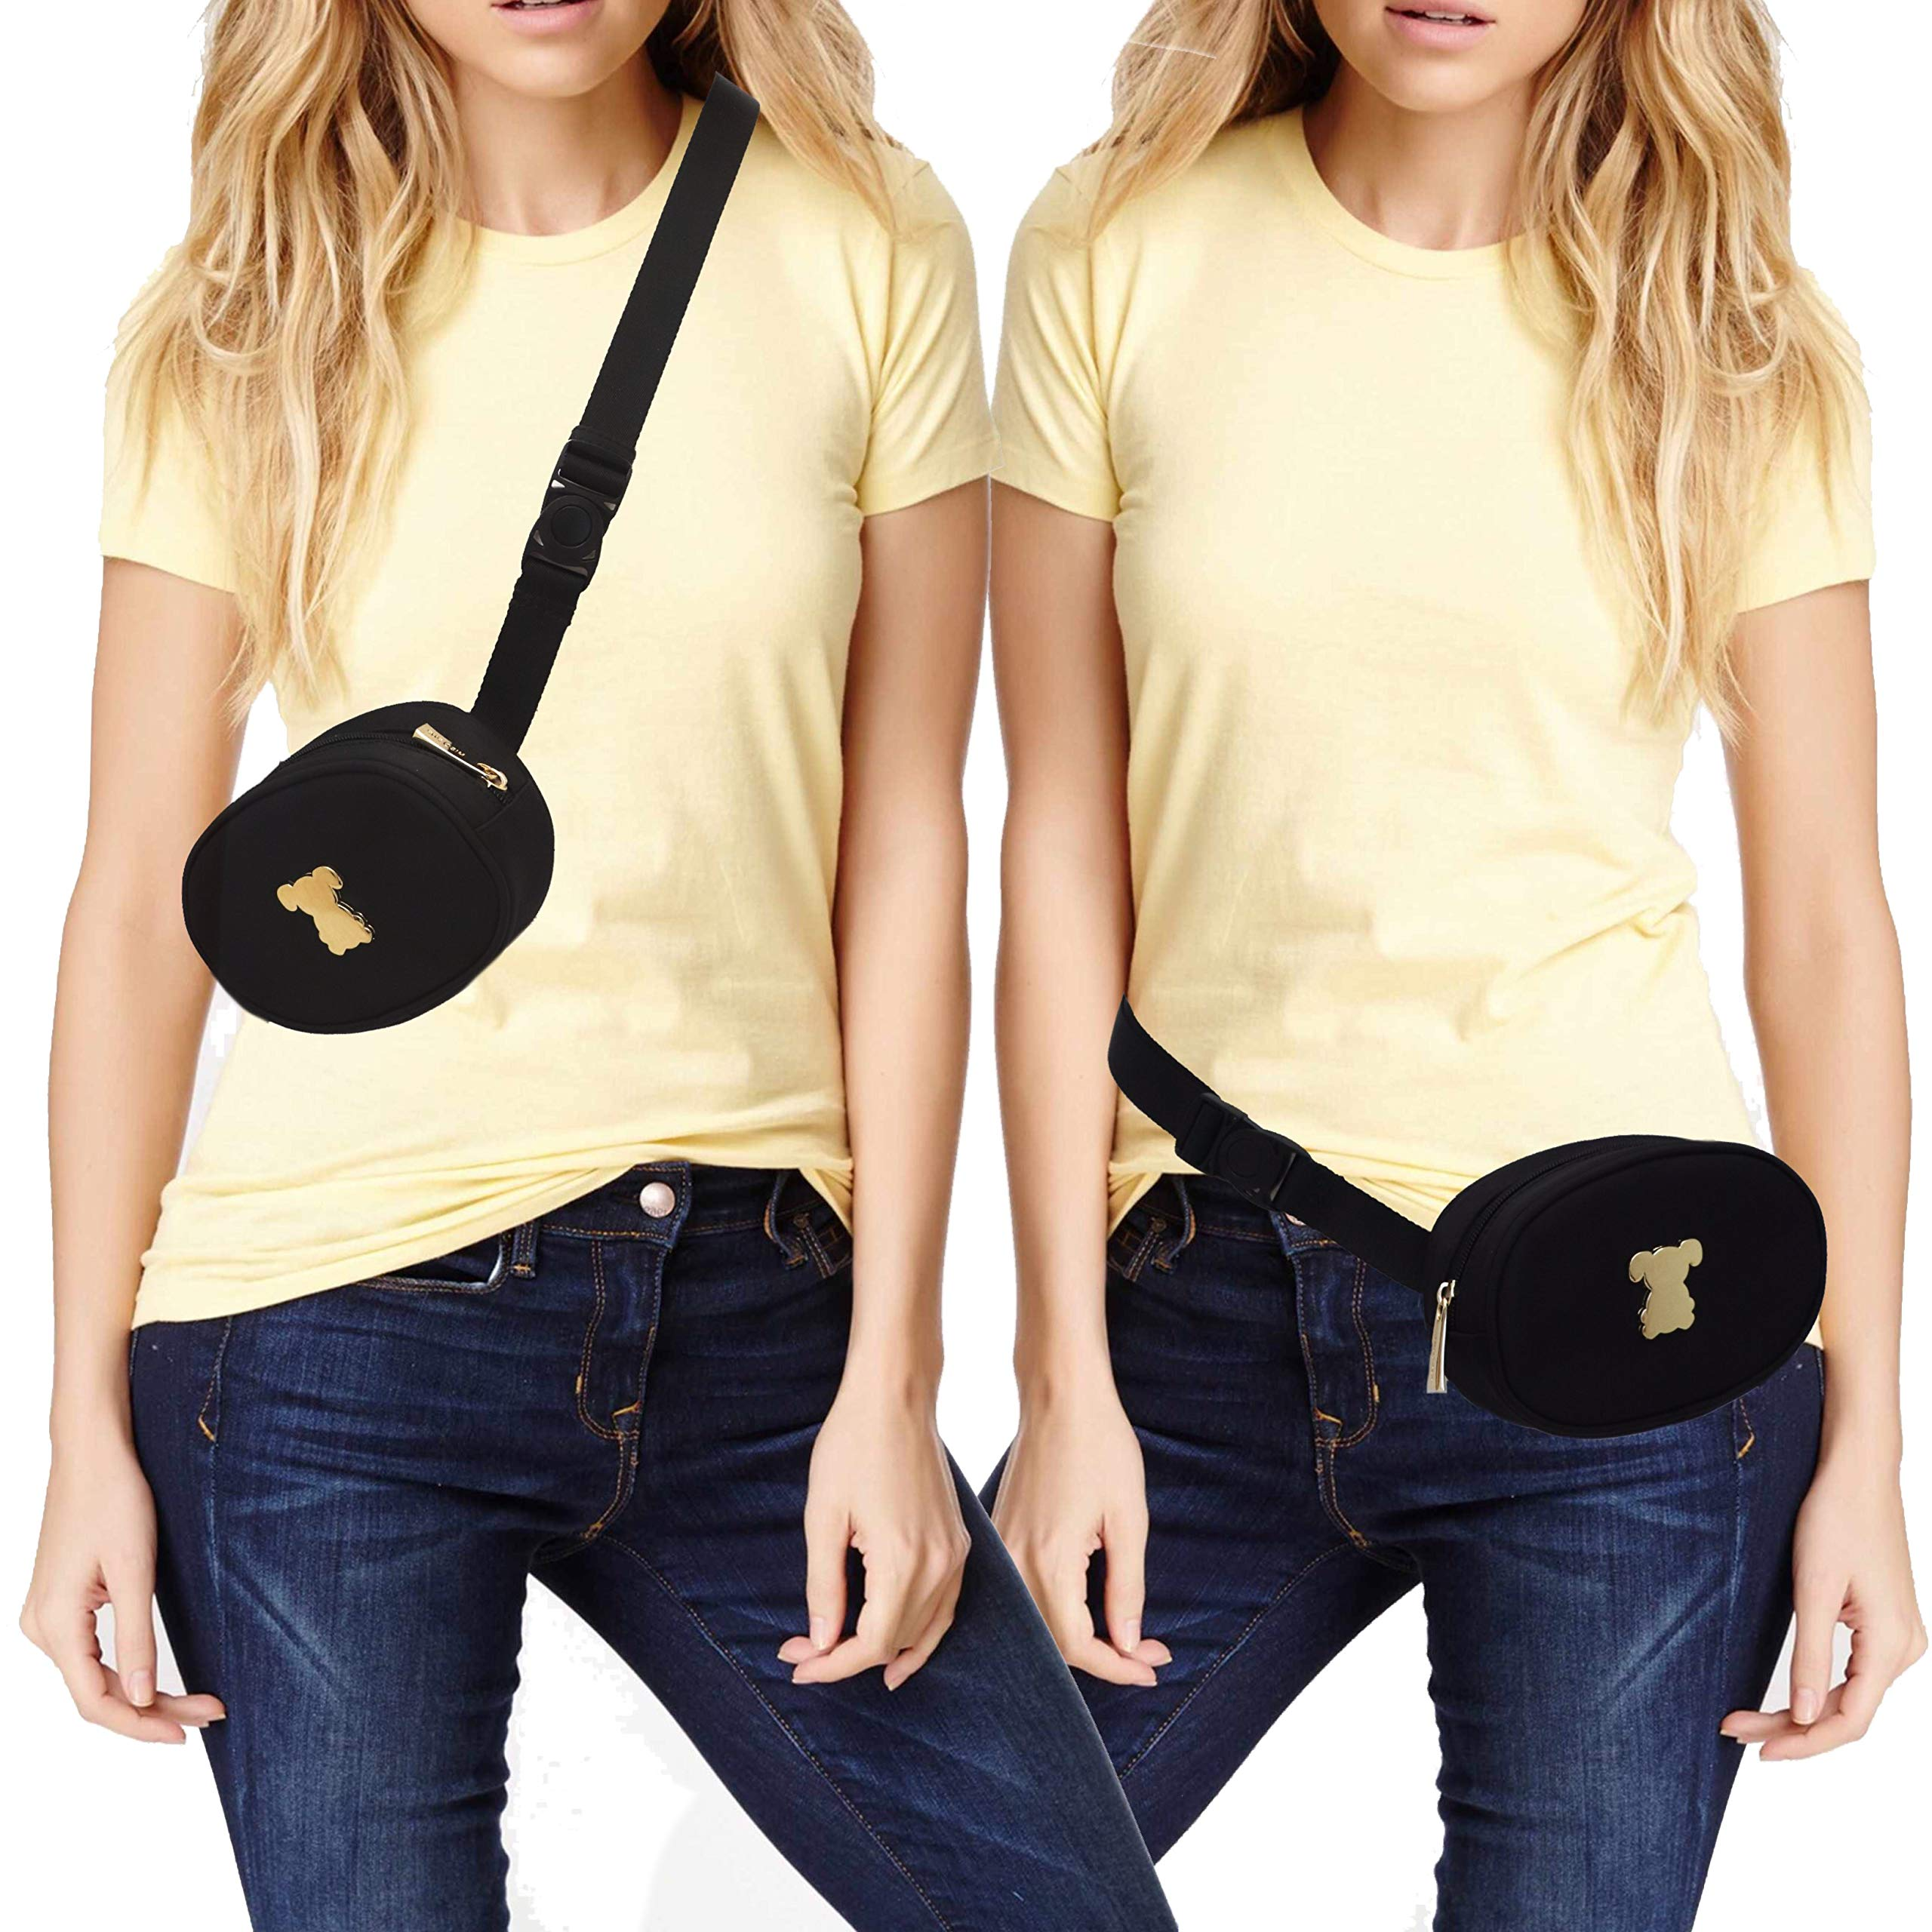 MISO PUP Belt Bag - Oval Fanny Pack with Swing Buckle